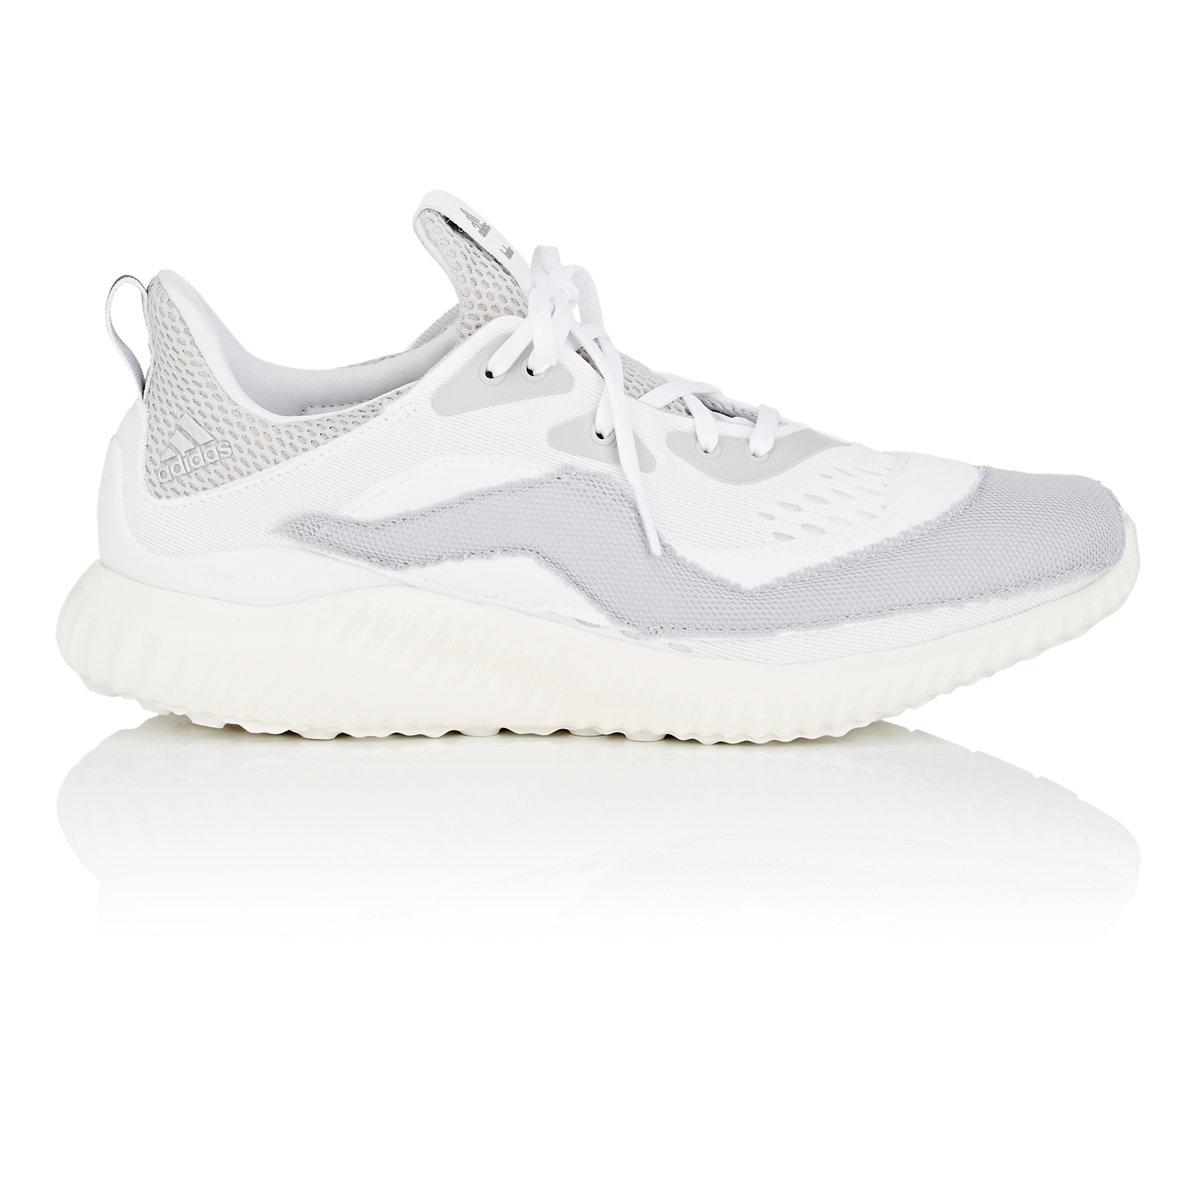 Adidas Originals AlphaBounce zapatillas en blanco Lyst